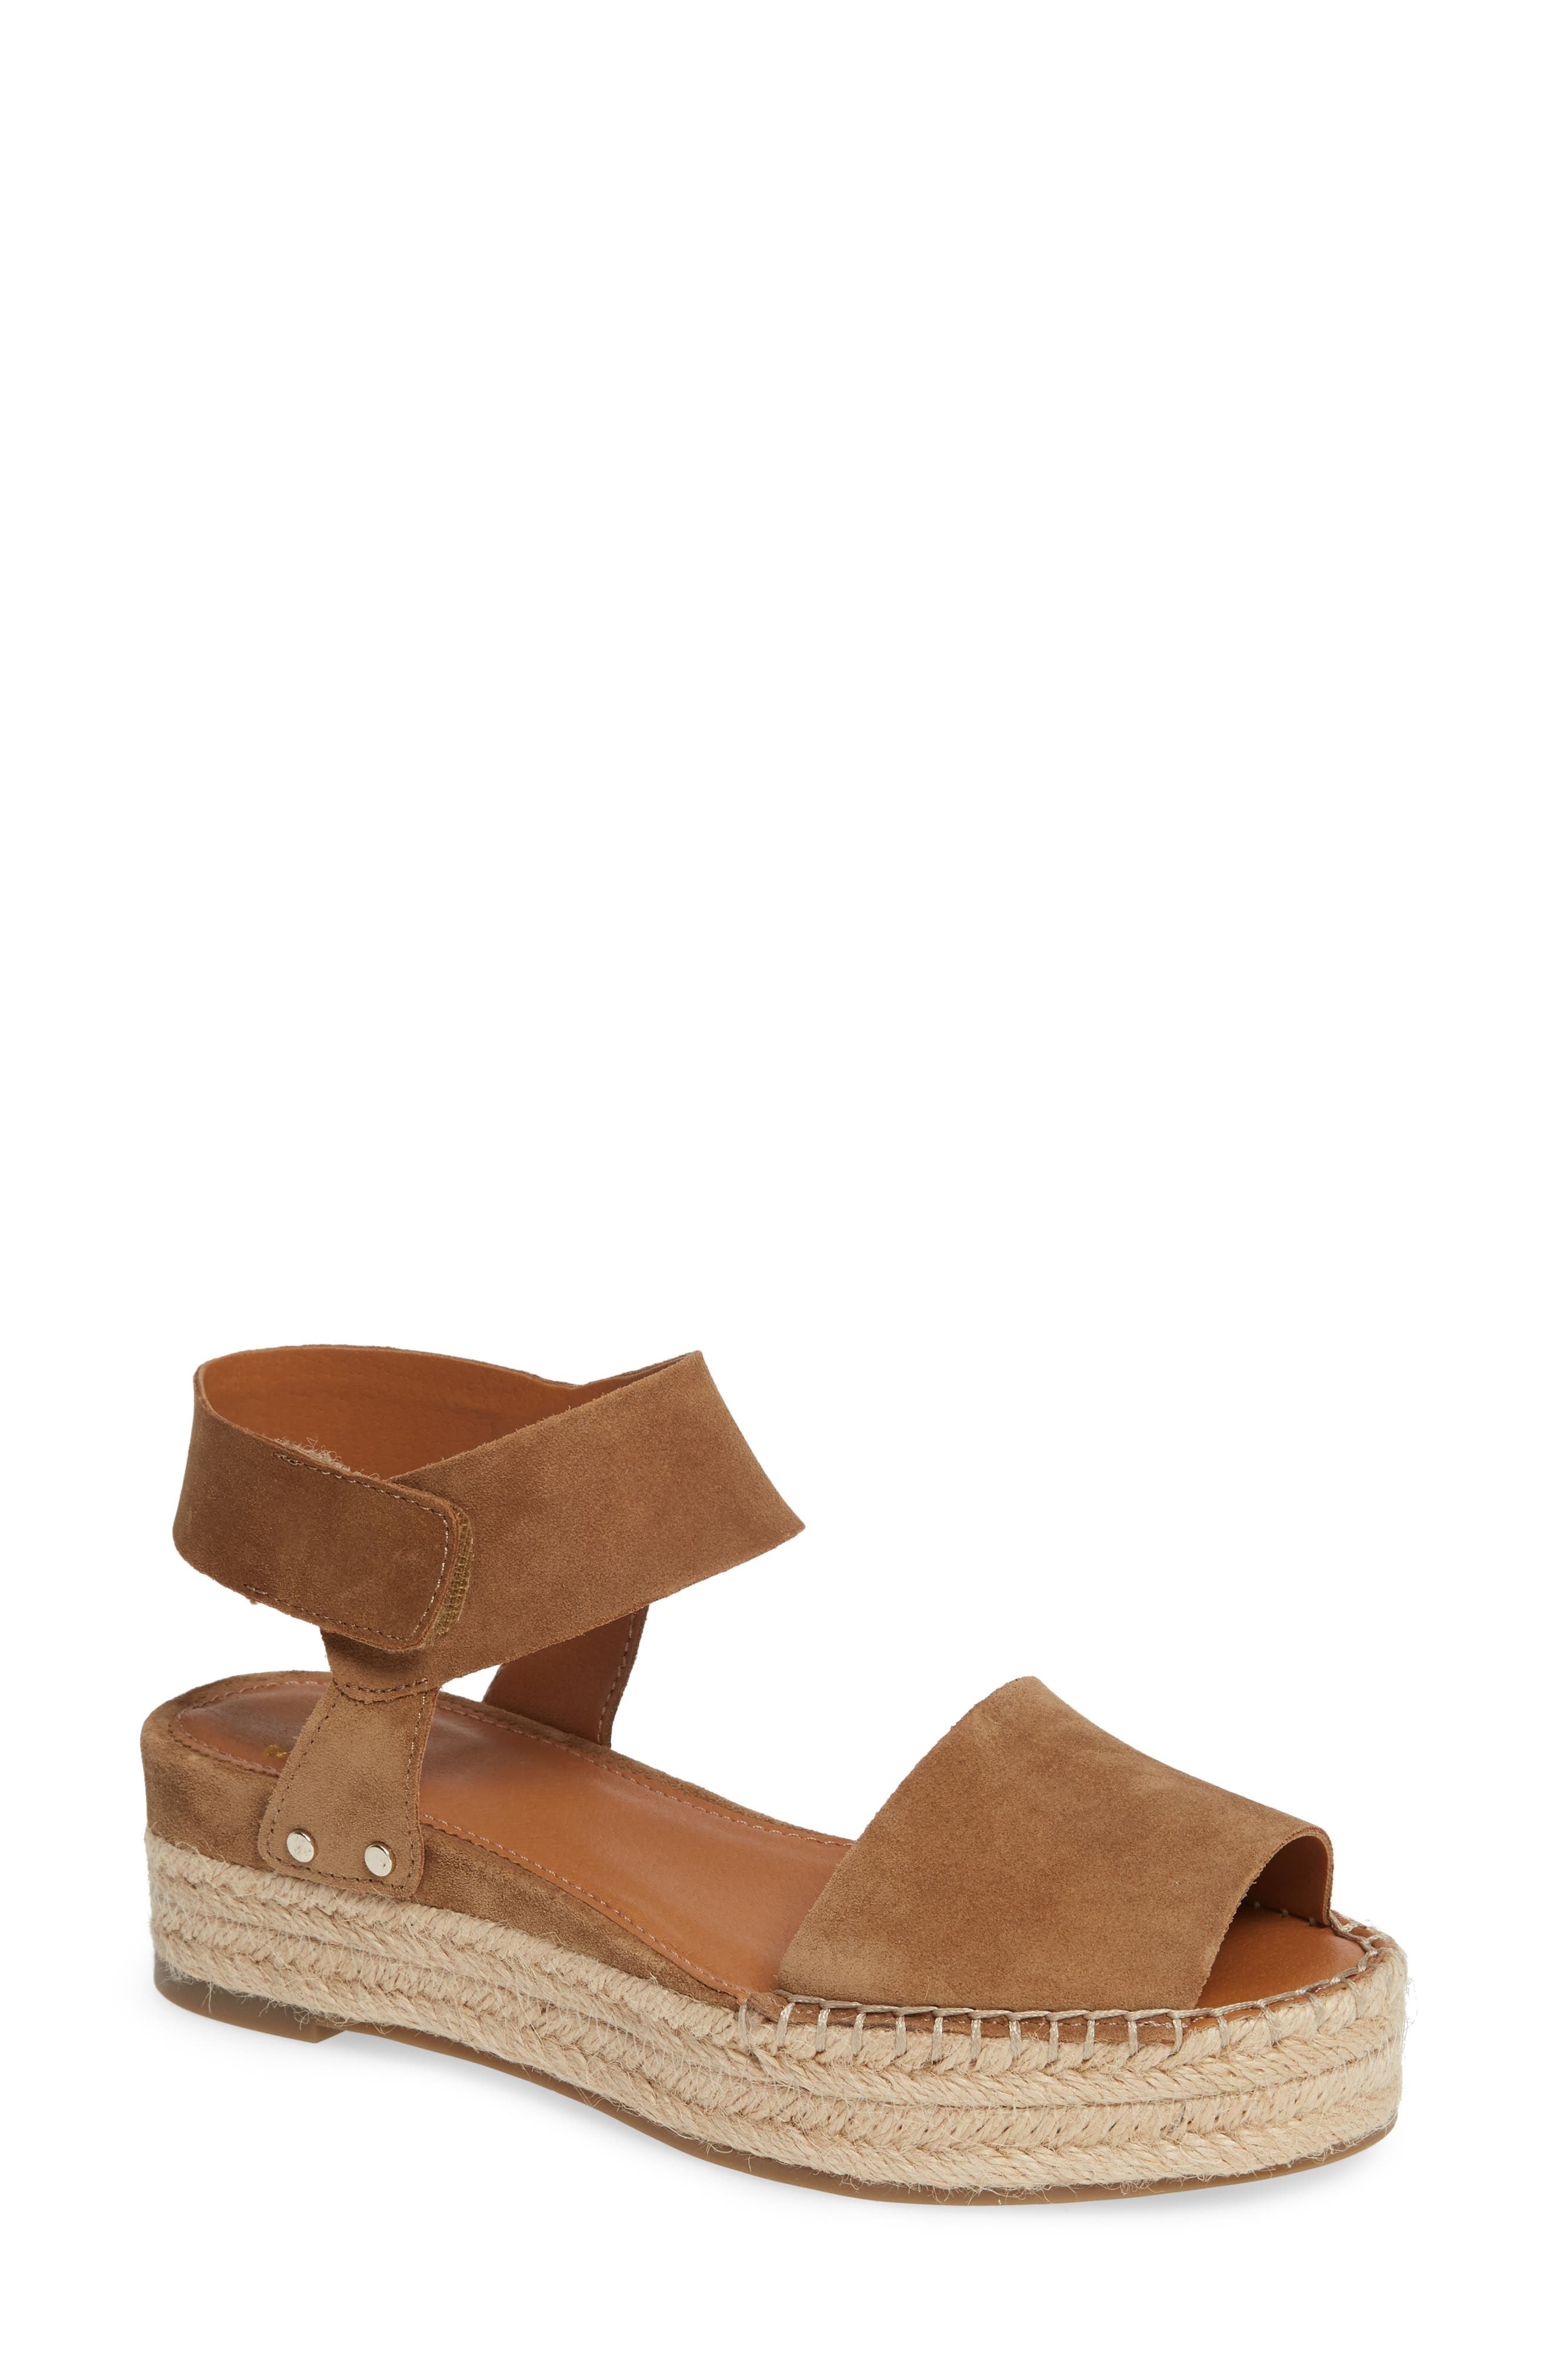 Oak Platform Wedge Espadrille,                             Main thumbnail 1, color,                             Toasted Barley Suede